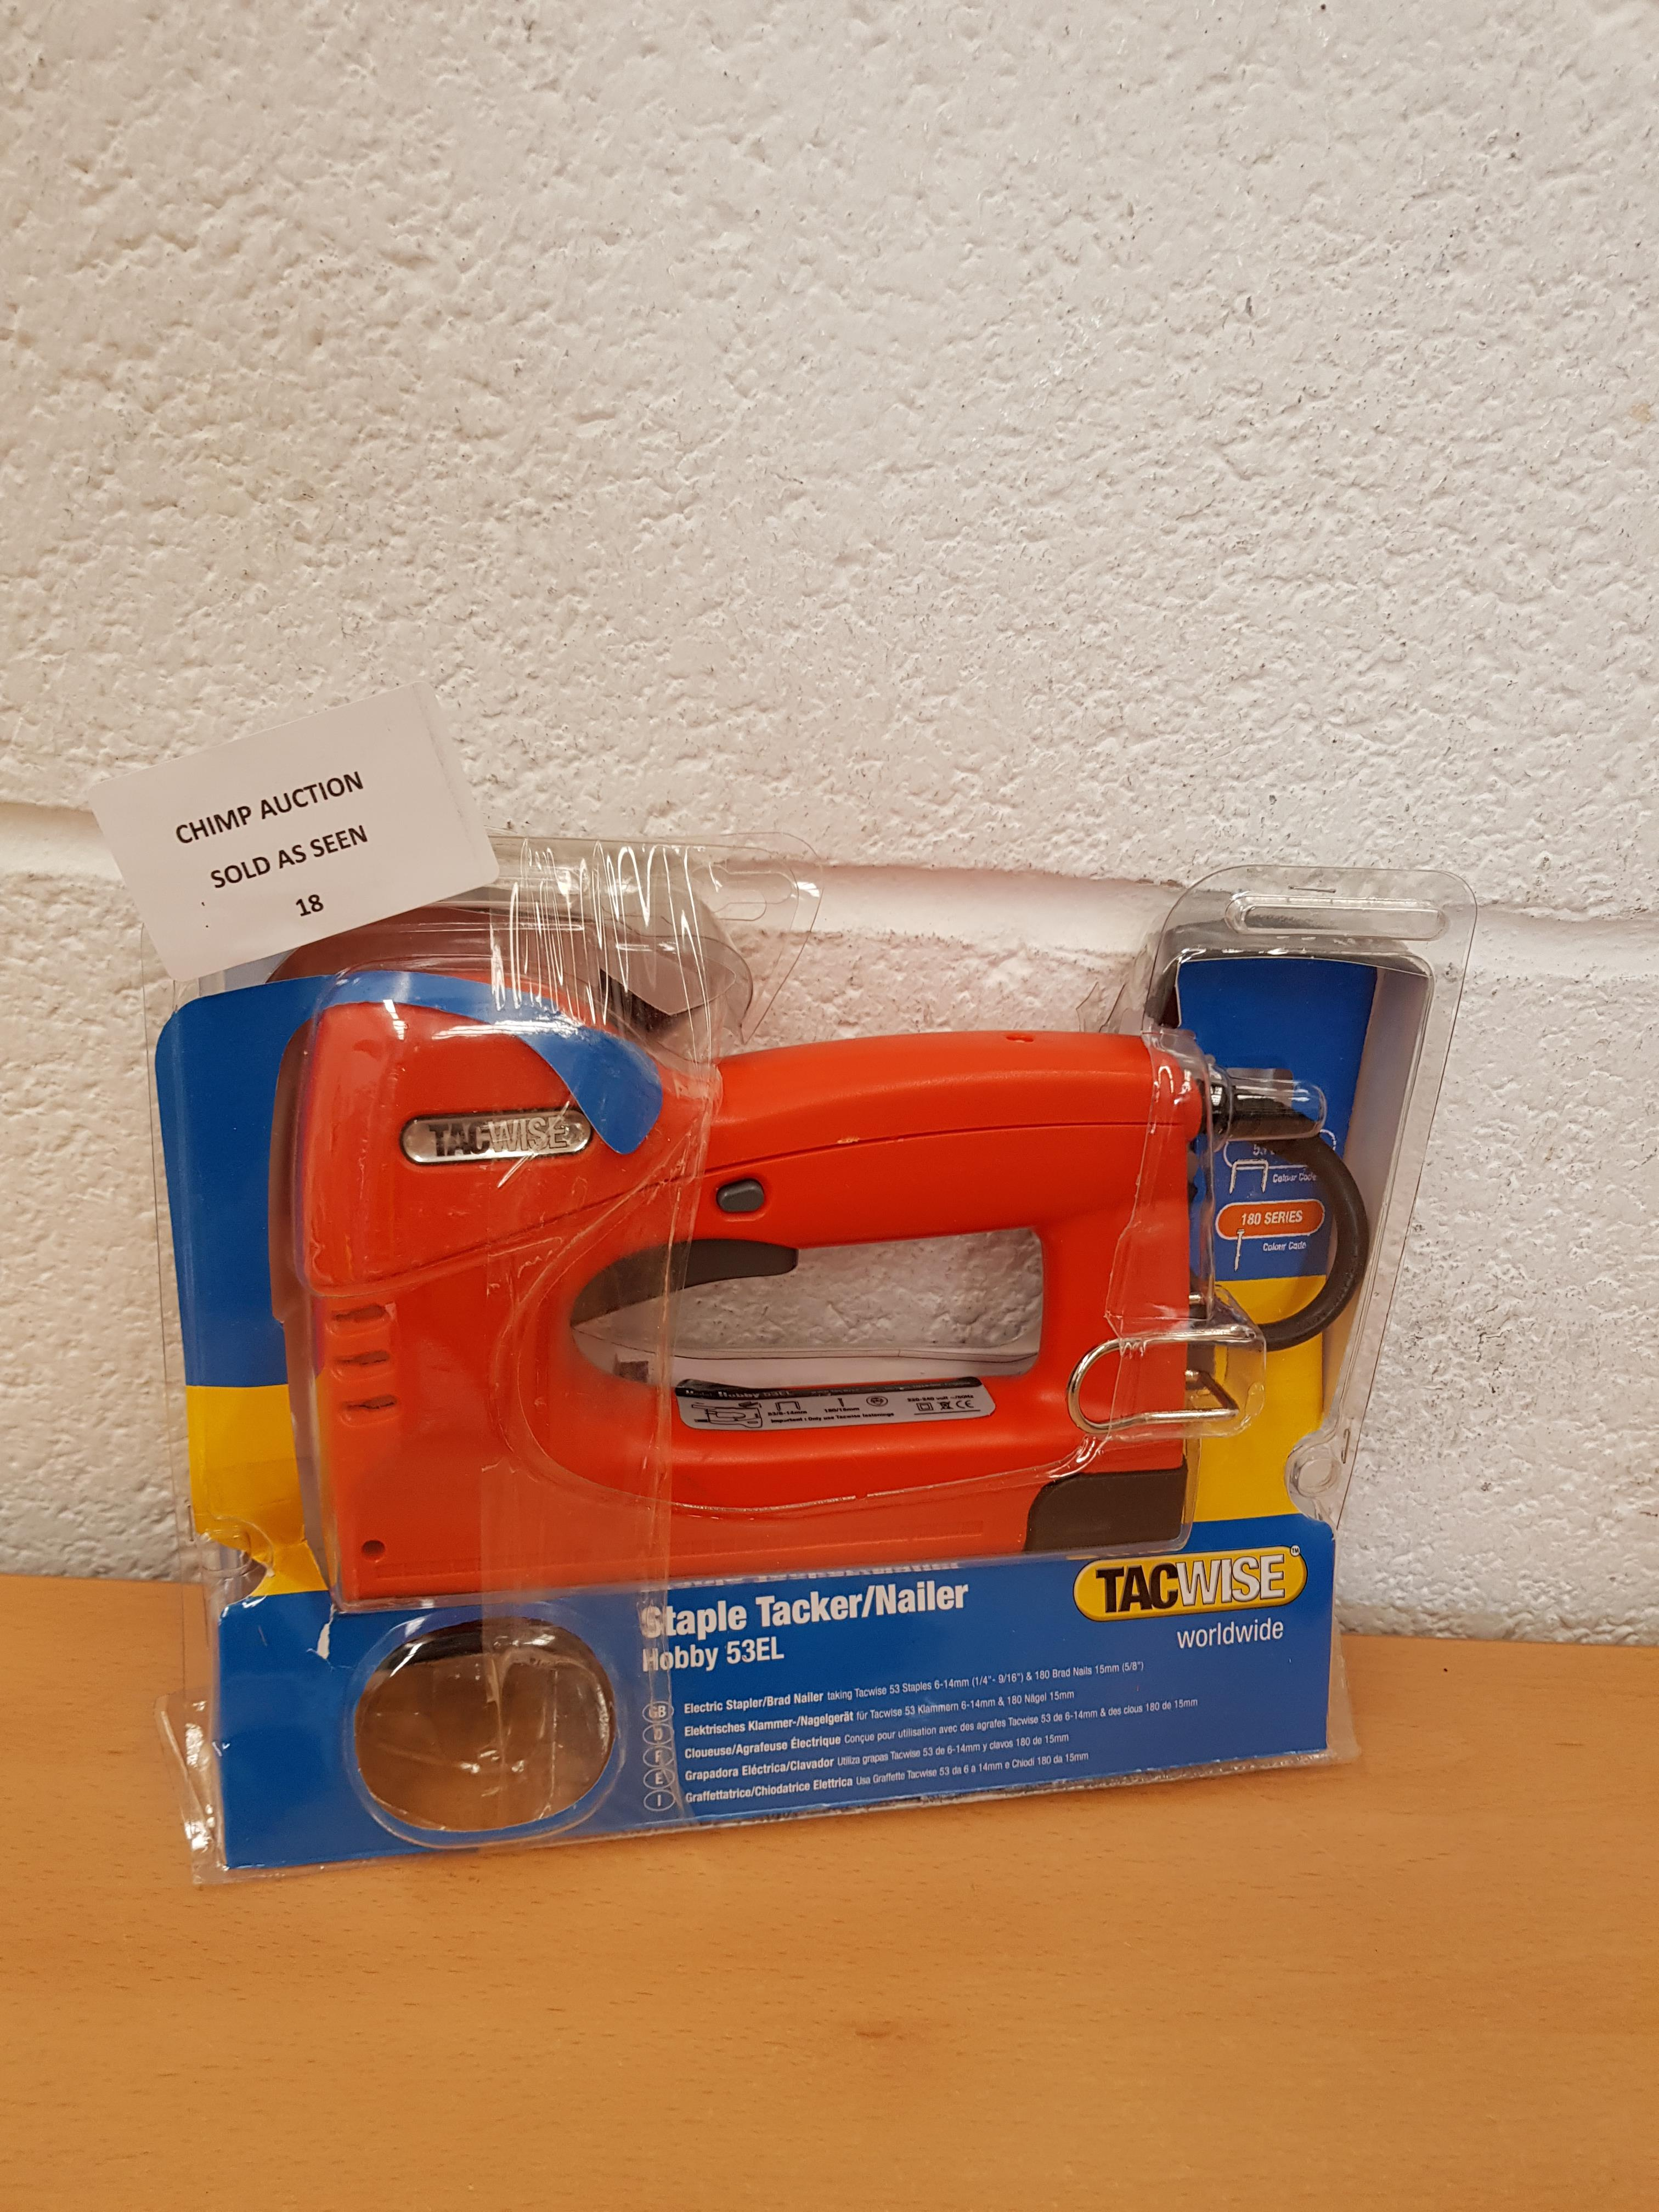 Lot 18 - TacWise Staple Tacker/ Nailer Electric Stapler